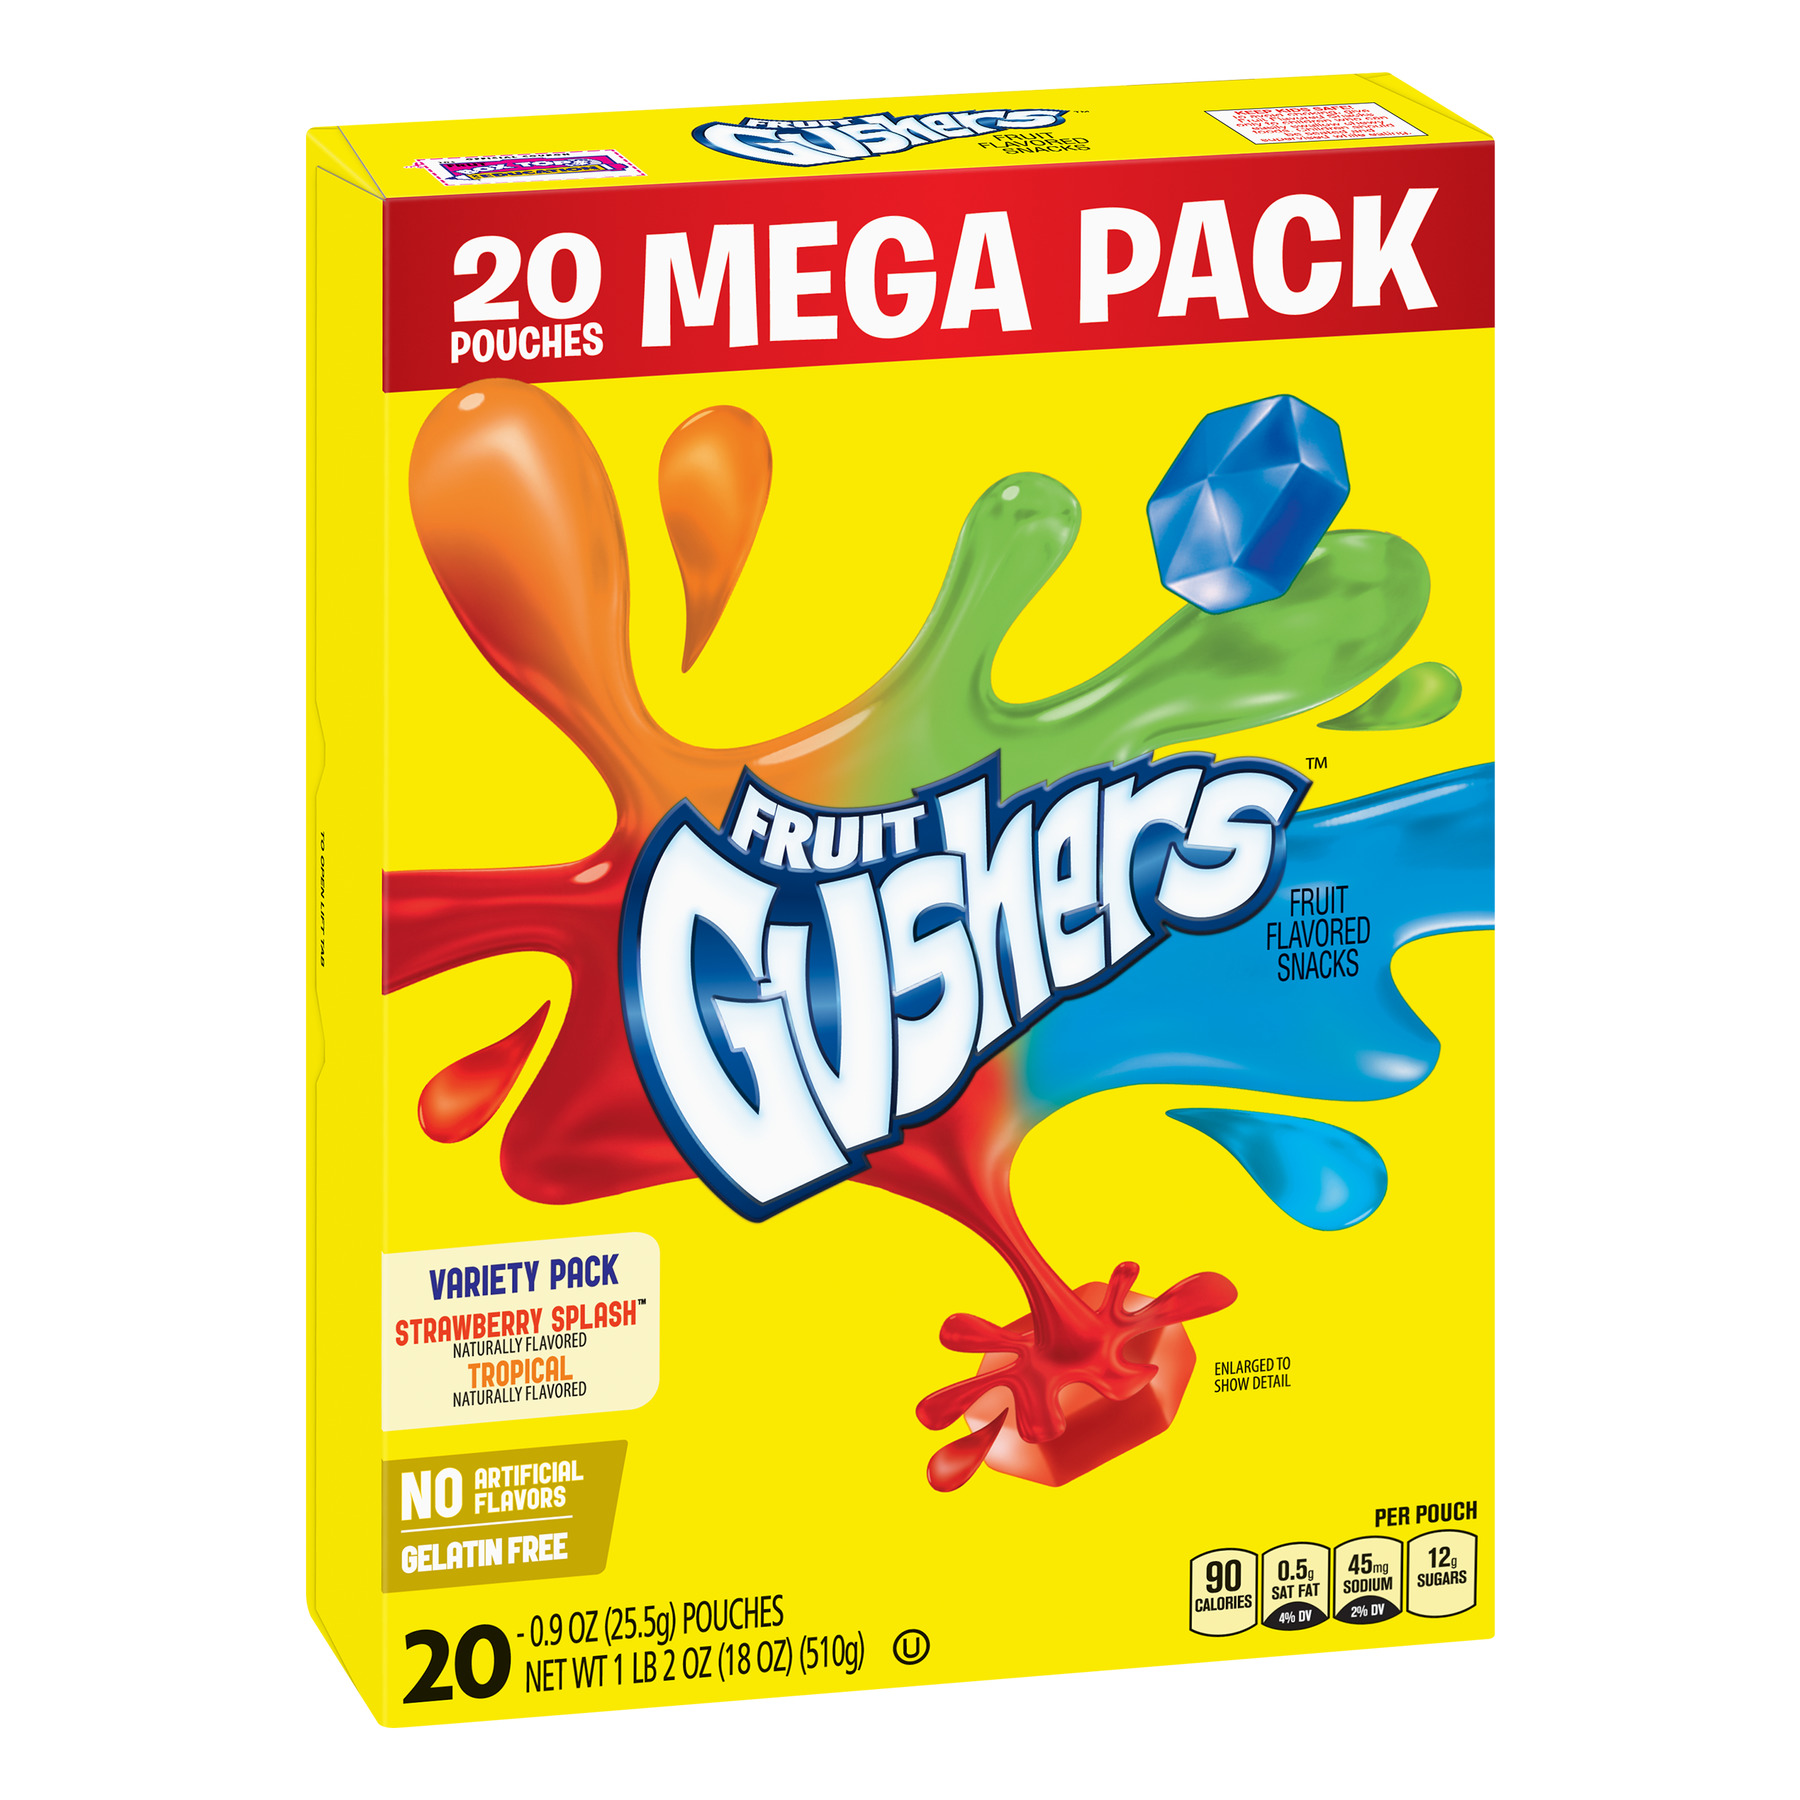 Fruit Gushers Fruit Flavored Snacks Pouches Variety Pack, 0.9 Oz., 20 Count